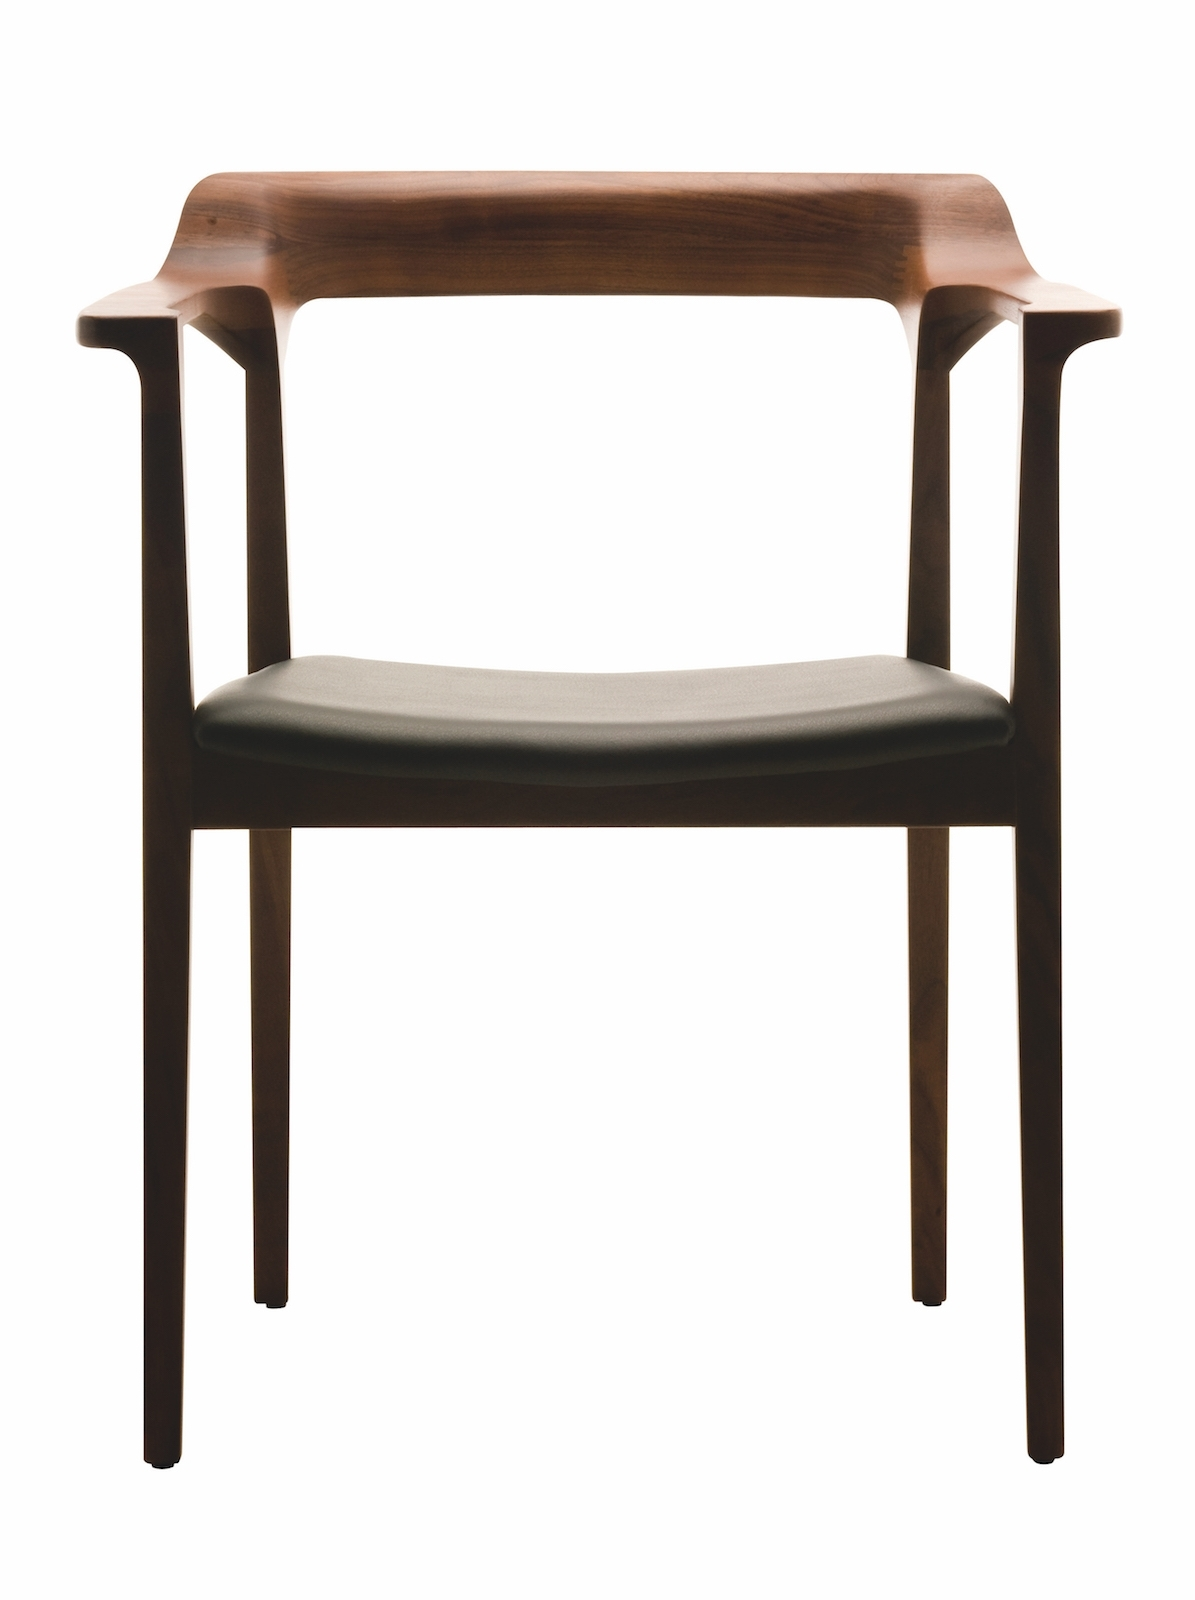 Black Dining Chairs Throughout Widely Used Caitlan Dining Chair In Black Leather And Walnut Finishnuevo (View 23 of 25)